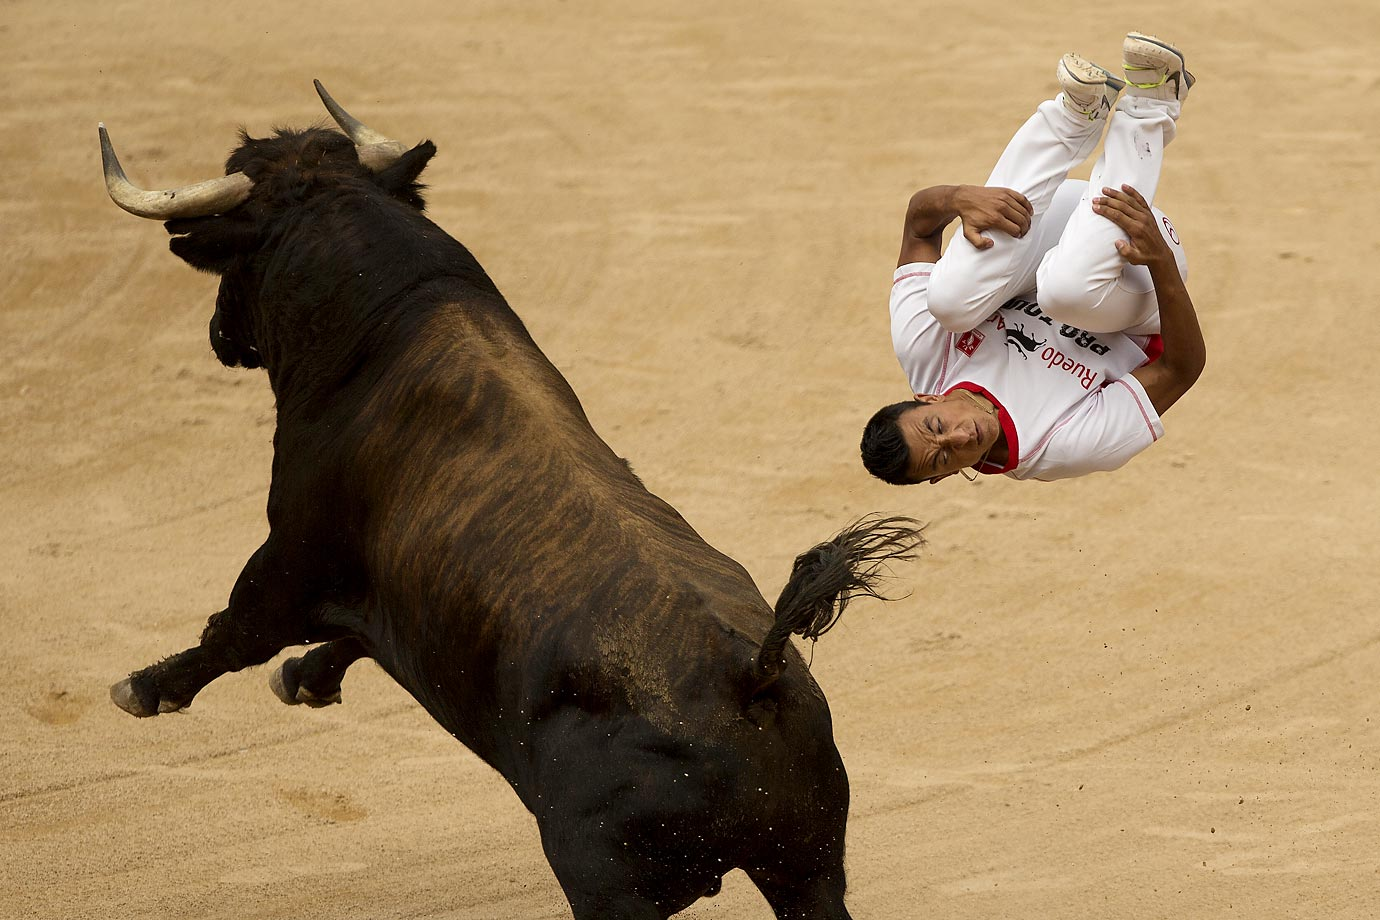 A ''recortador'' jumps over a bull during a competition at the San Fermin festival in Pamplona, Spain.